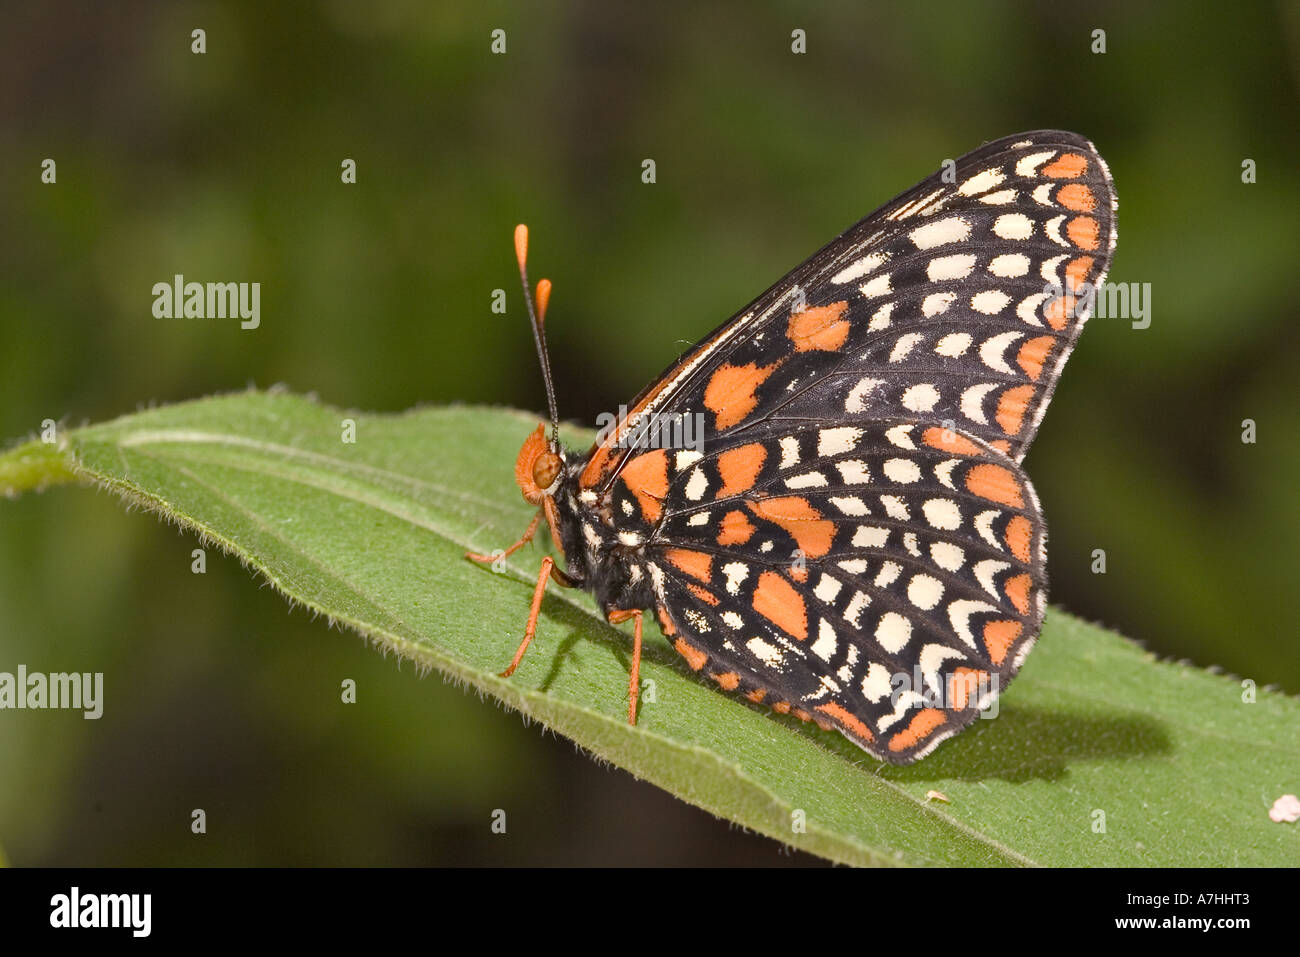 Baltimore Checkerspot - rare butterfly on leaf - Stock Image